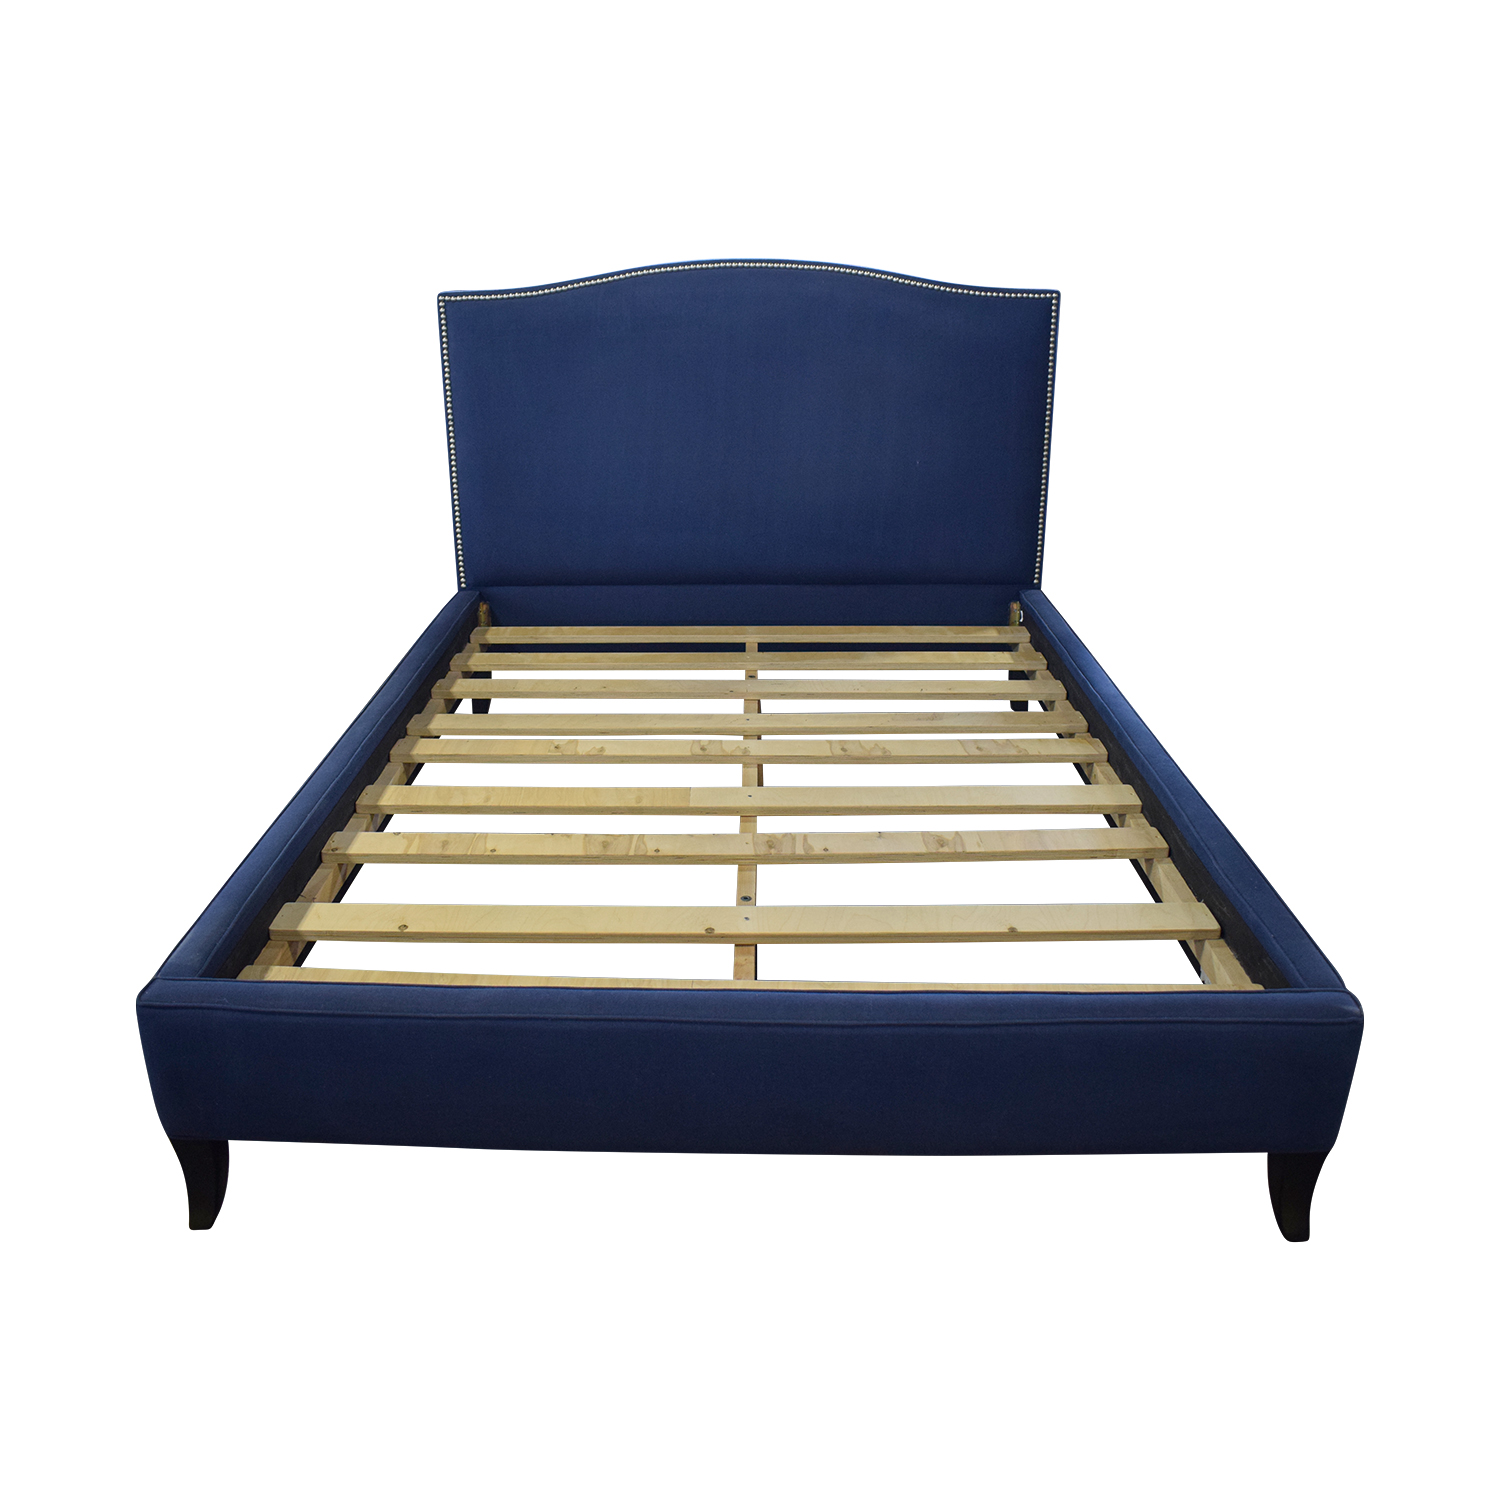 West Elm West Elm Nailhead Blue Upholstered Platform Queen Bed Frame Bed Frames